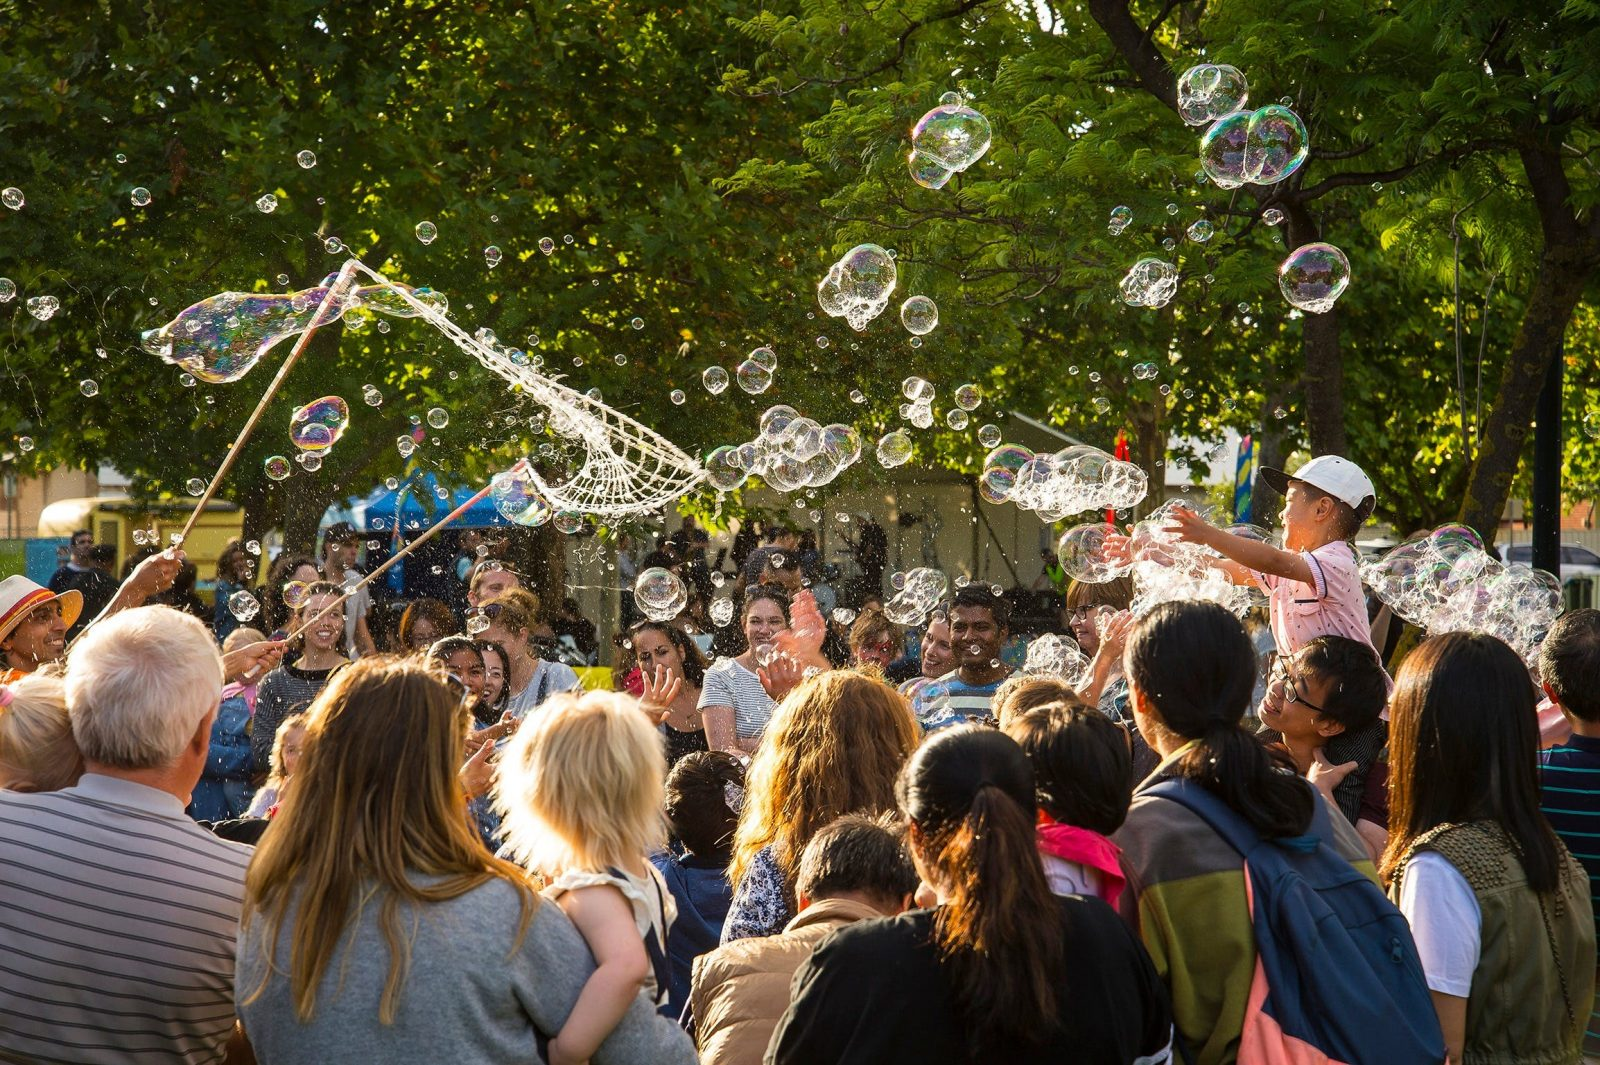 Group of adults watching children blow bubbles, take part in a bubble show and enjoy themselves.